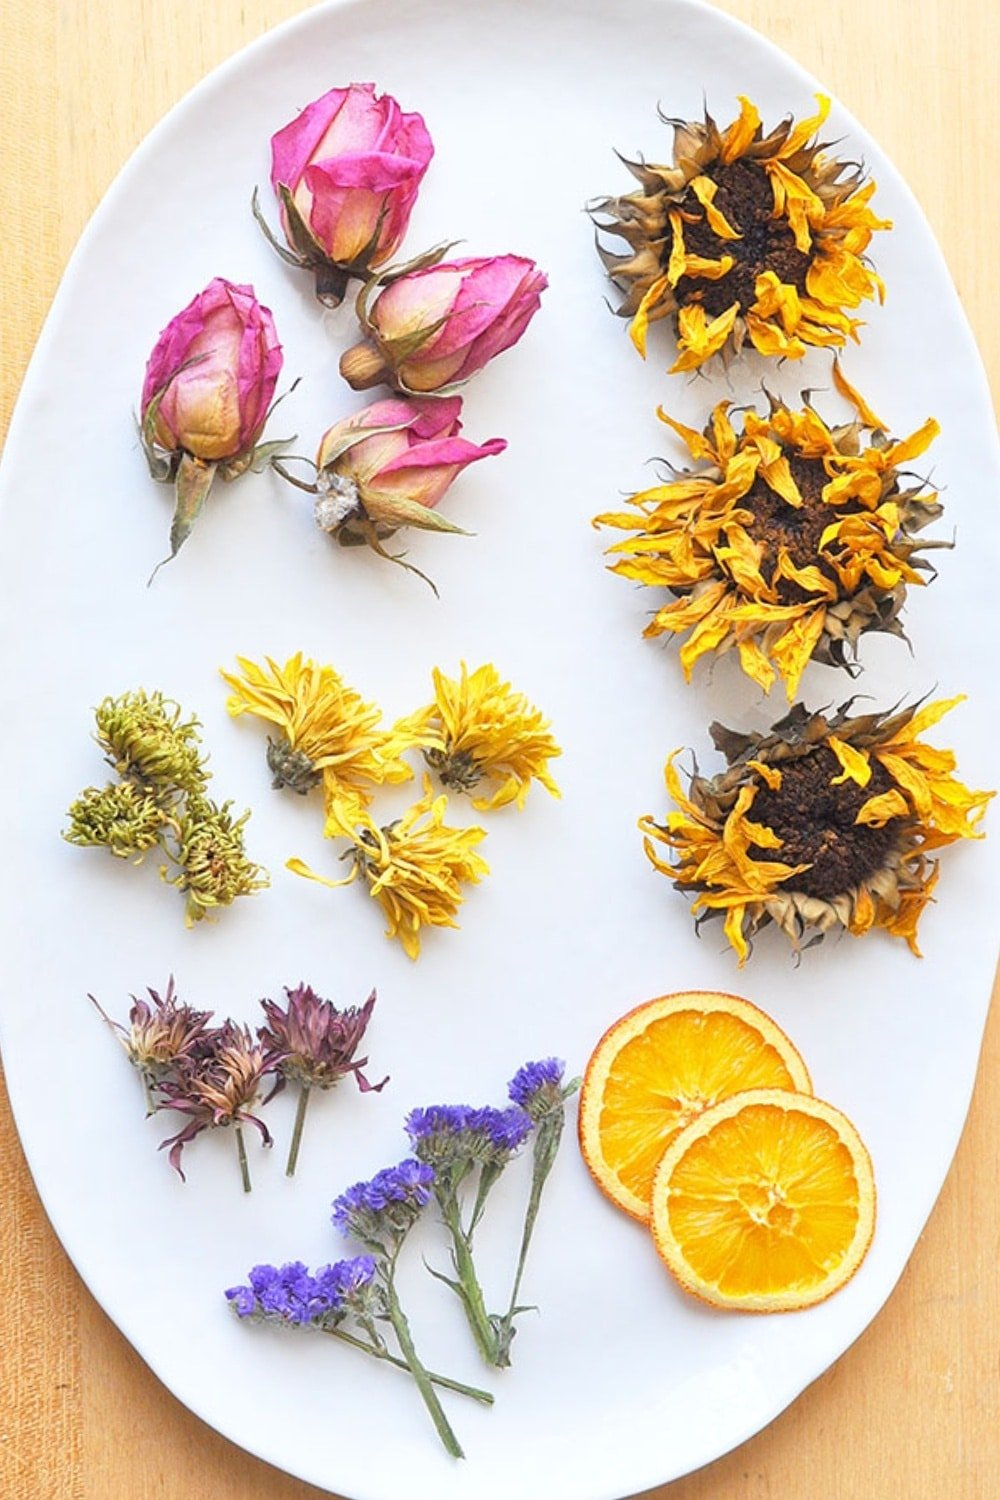 Effortless Oven Dried Flowers for Crafts